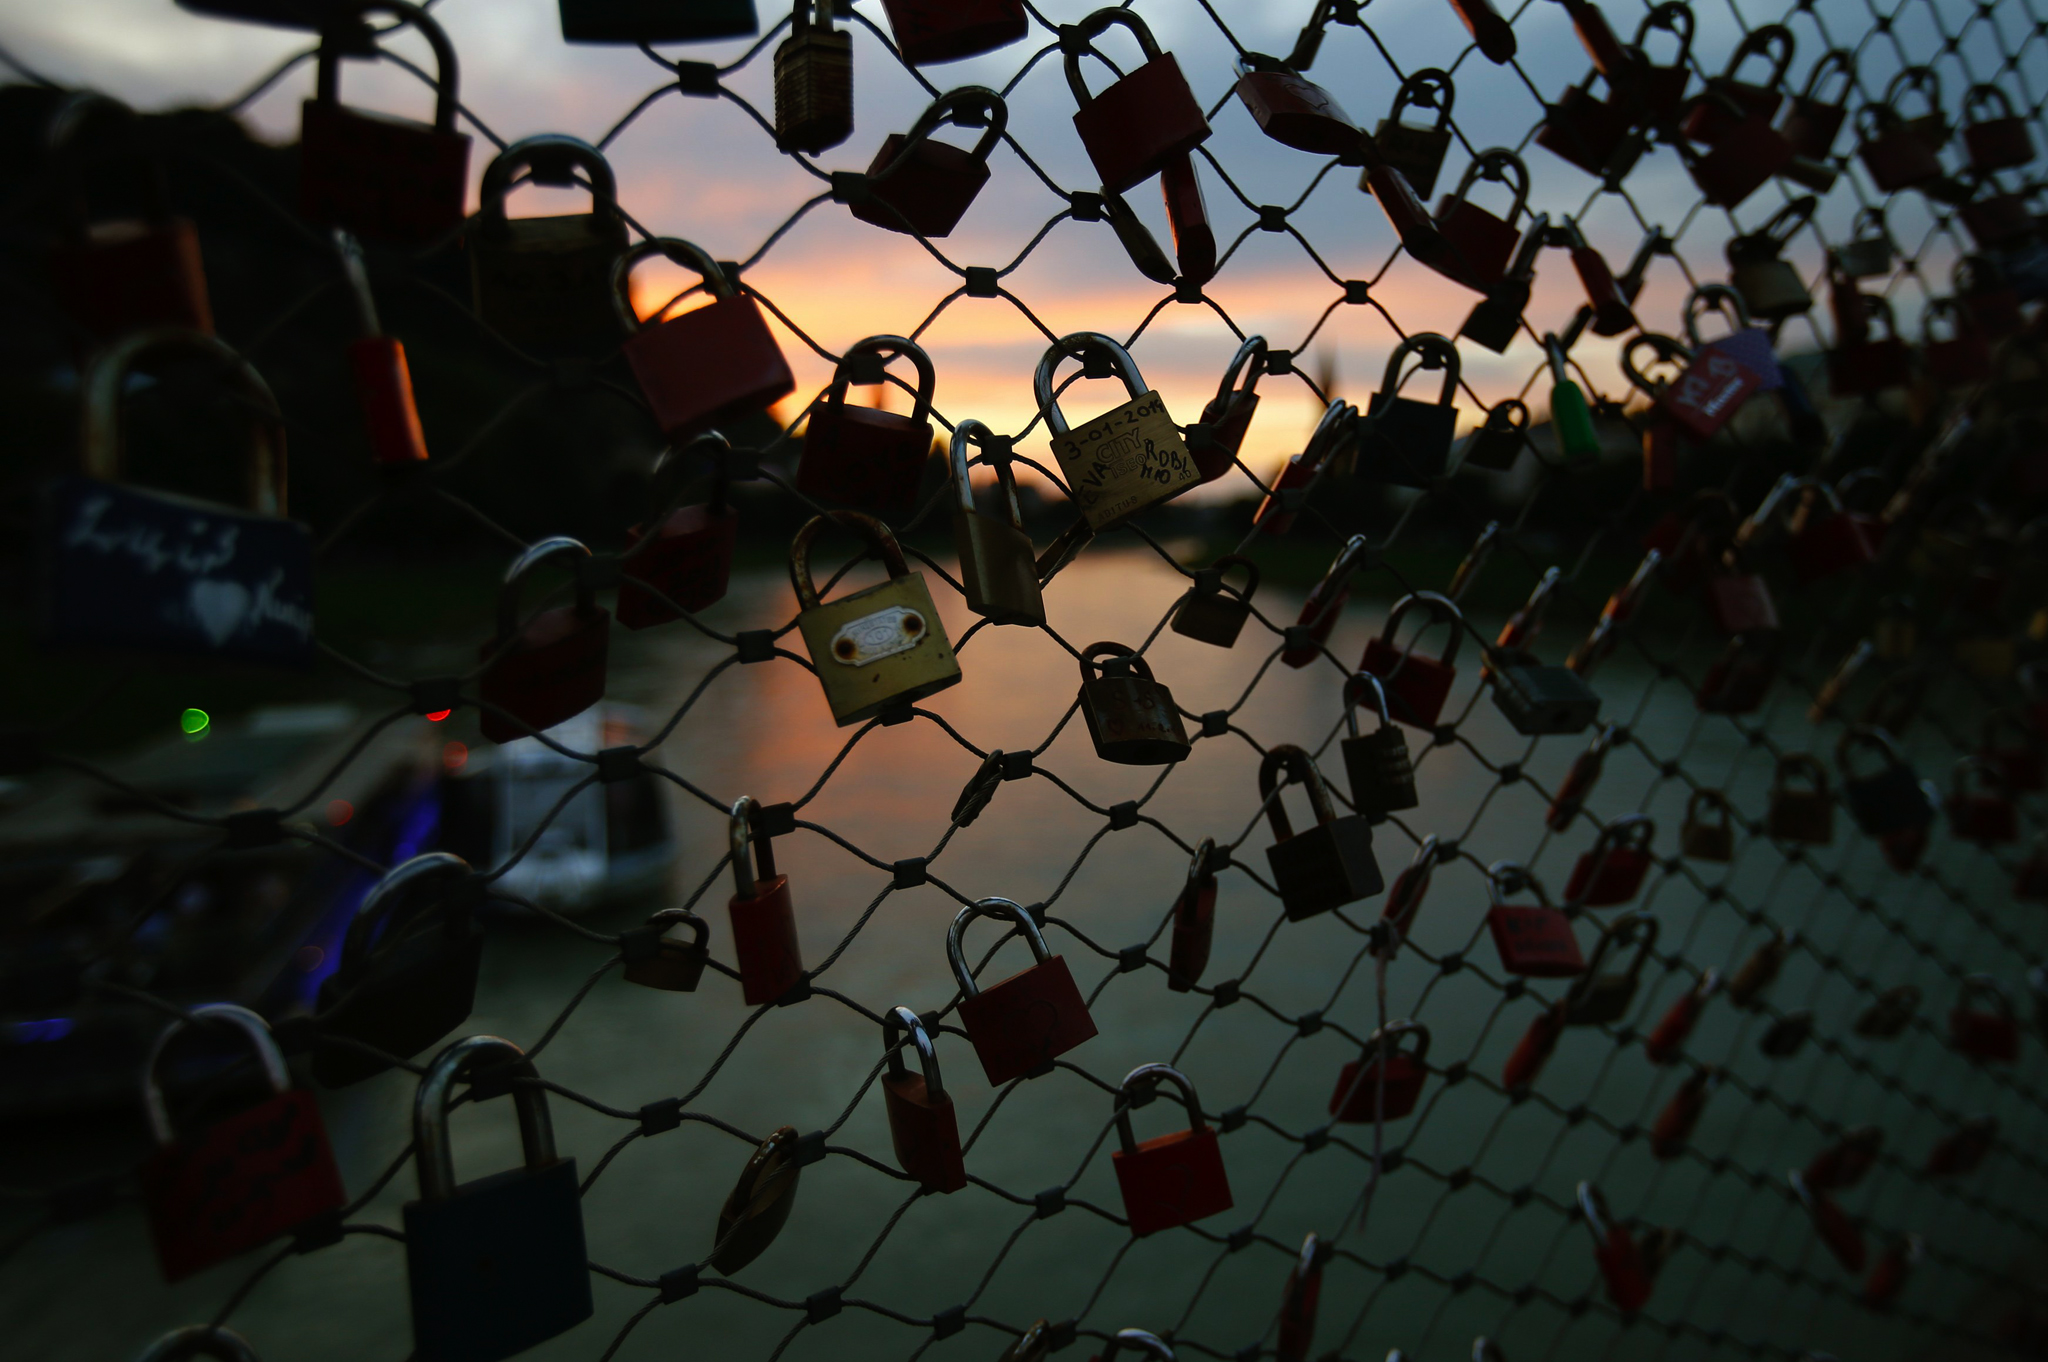 Love locks on a bridge over the river Salzach in Salzburg, Austria.